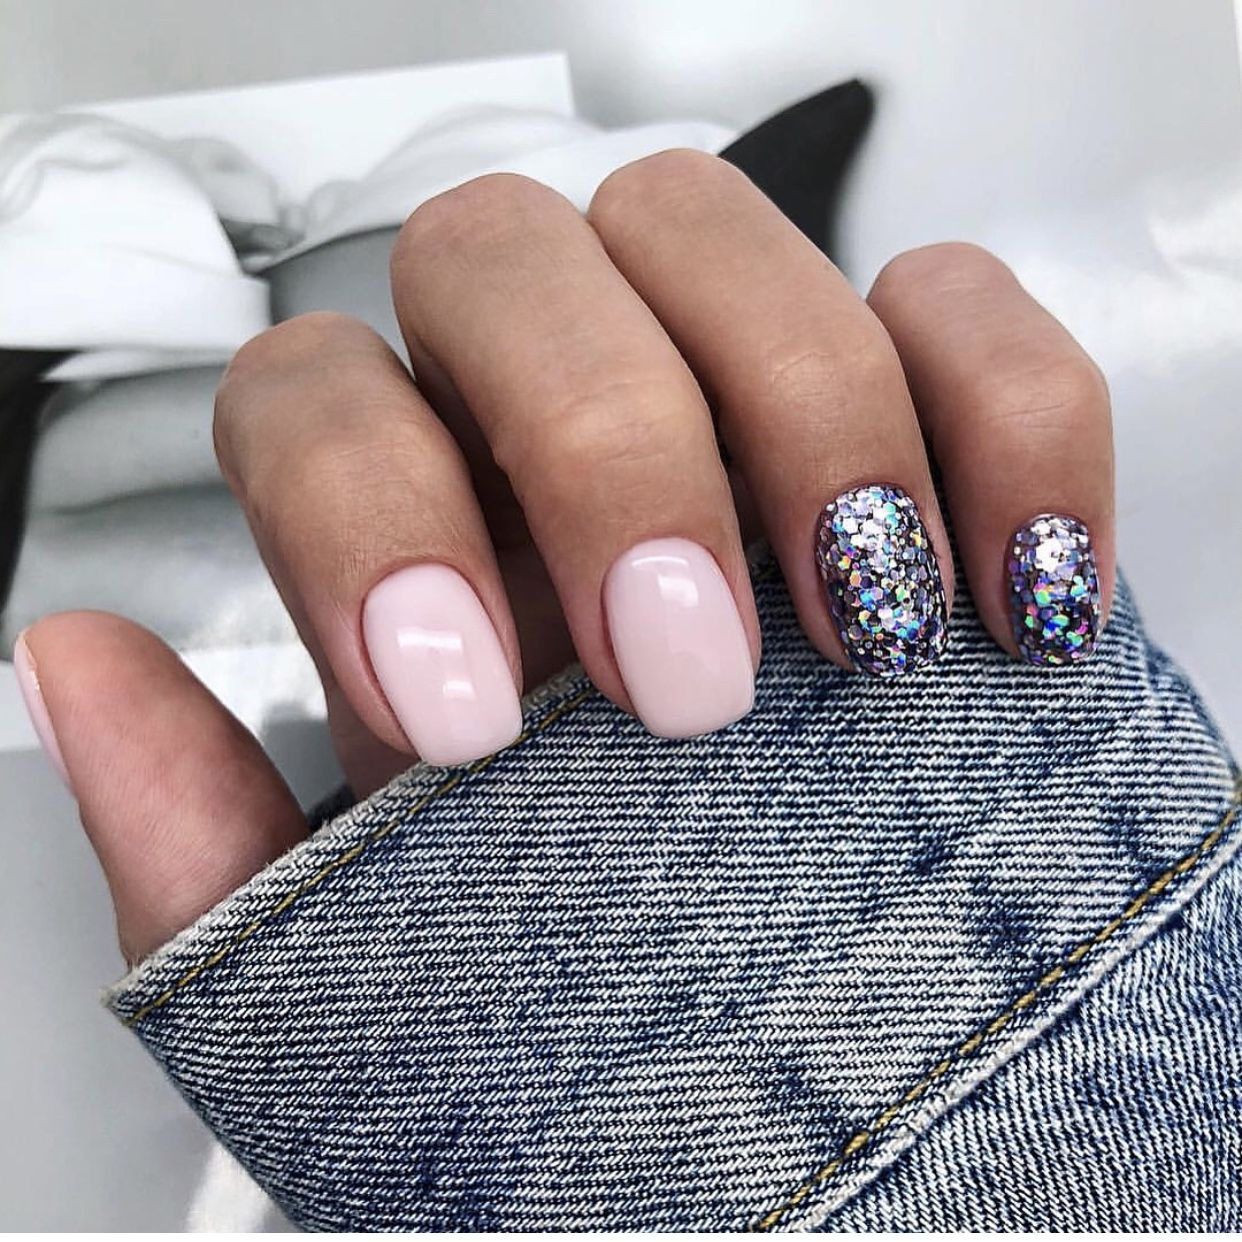 Don T Worry You Can Still Look Gorgeous During The Cold Winter Months Don T Miss Out On This Season Trends Too Many Layers And You Re Sweating Befo With Images Pink Nails